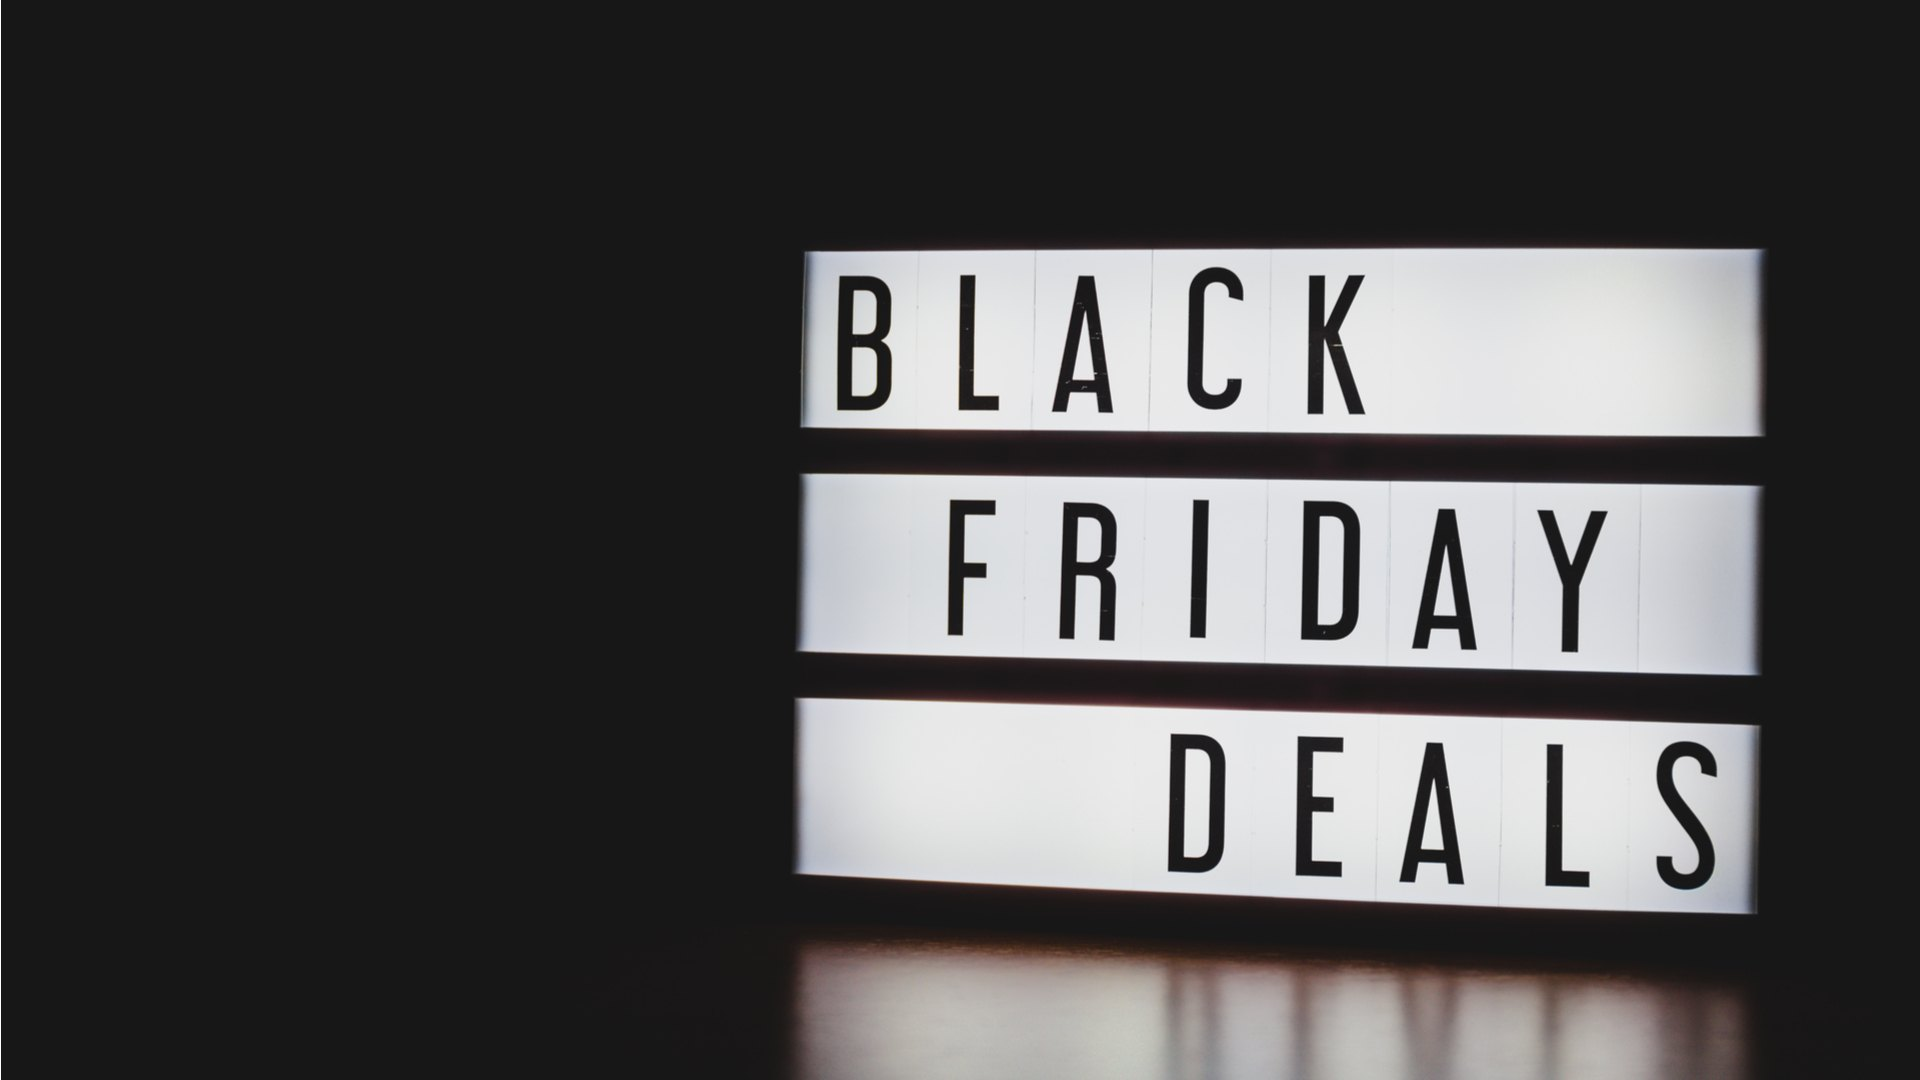 Black Friday Beste Angebote Wat Zijn De Beste Black Friday Game Deals Van 2019?